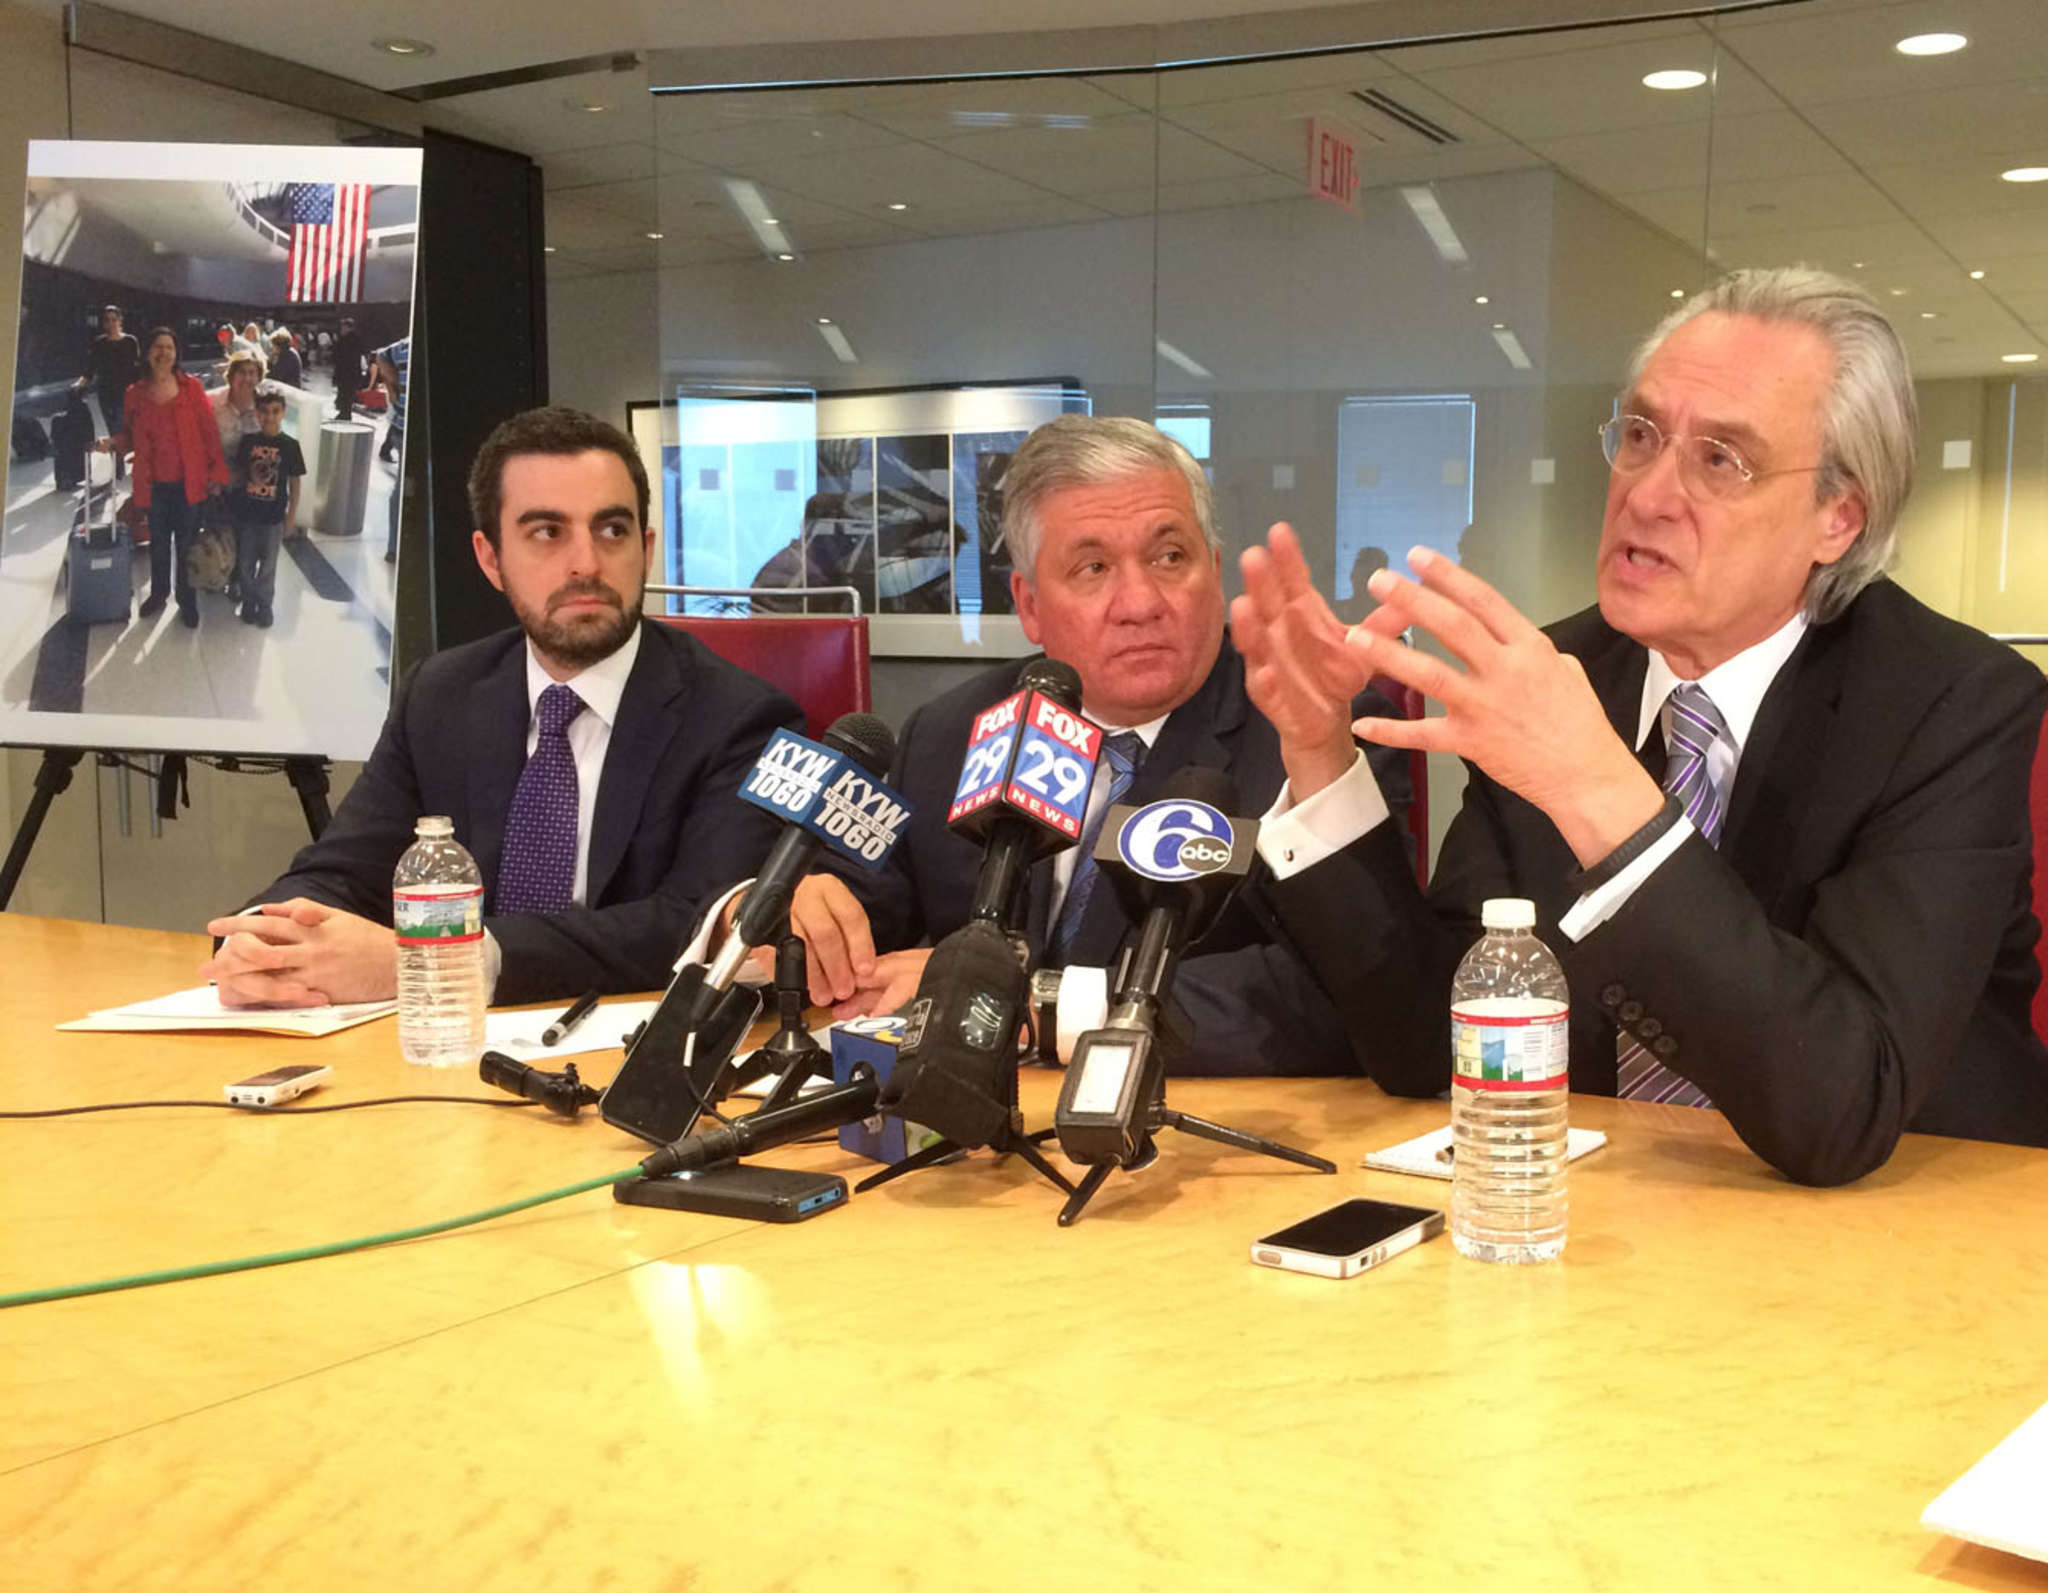 Lawyers involved in the Amtrak suits include (from left) Robert Zimmerman, Robert Mongeluzzi, and Tom Kline.